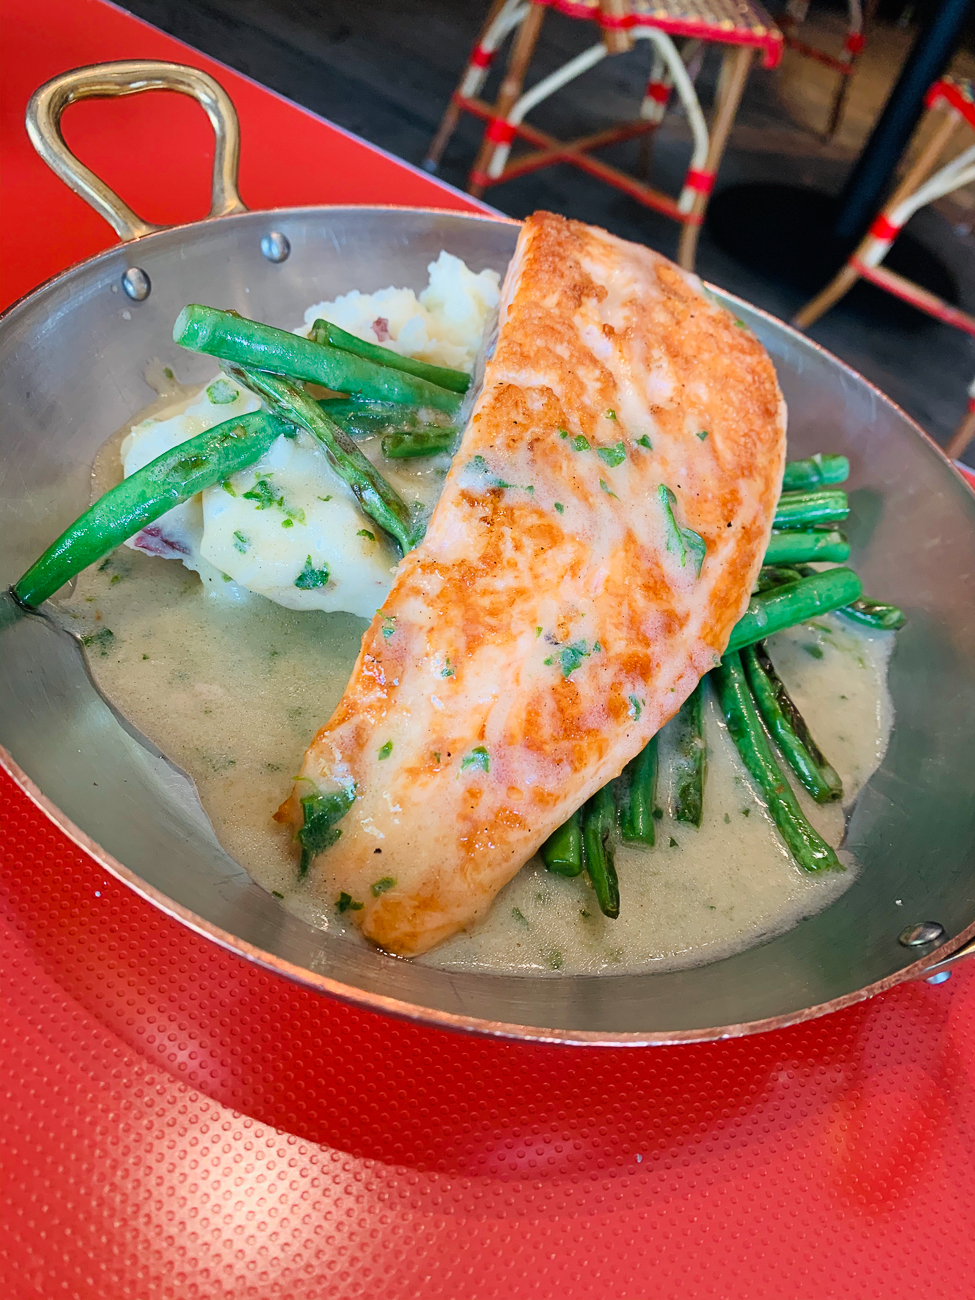 Salmon with citrus beurre blanc, capers, mashed redskins, and haricots verts / Image courtesy of The Mercer OTR // Published: 5.14.20